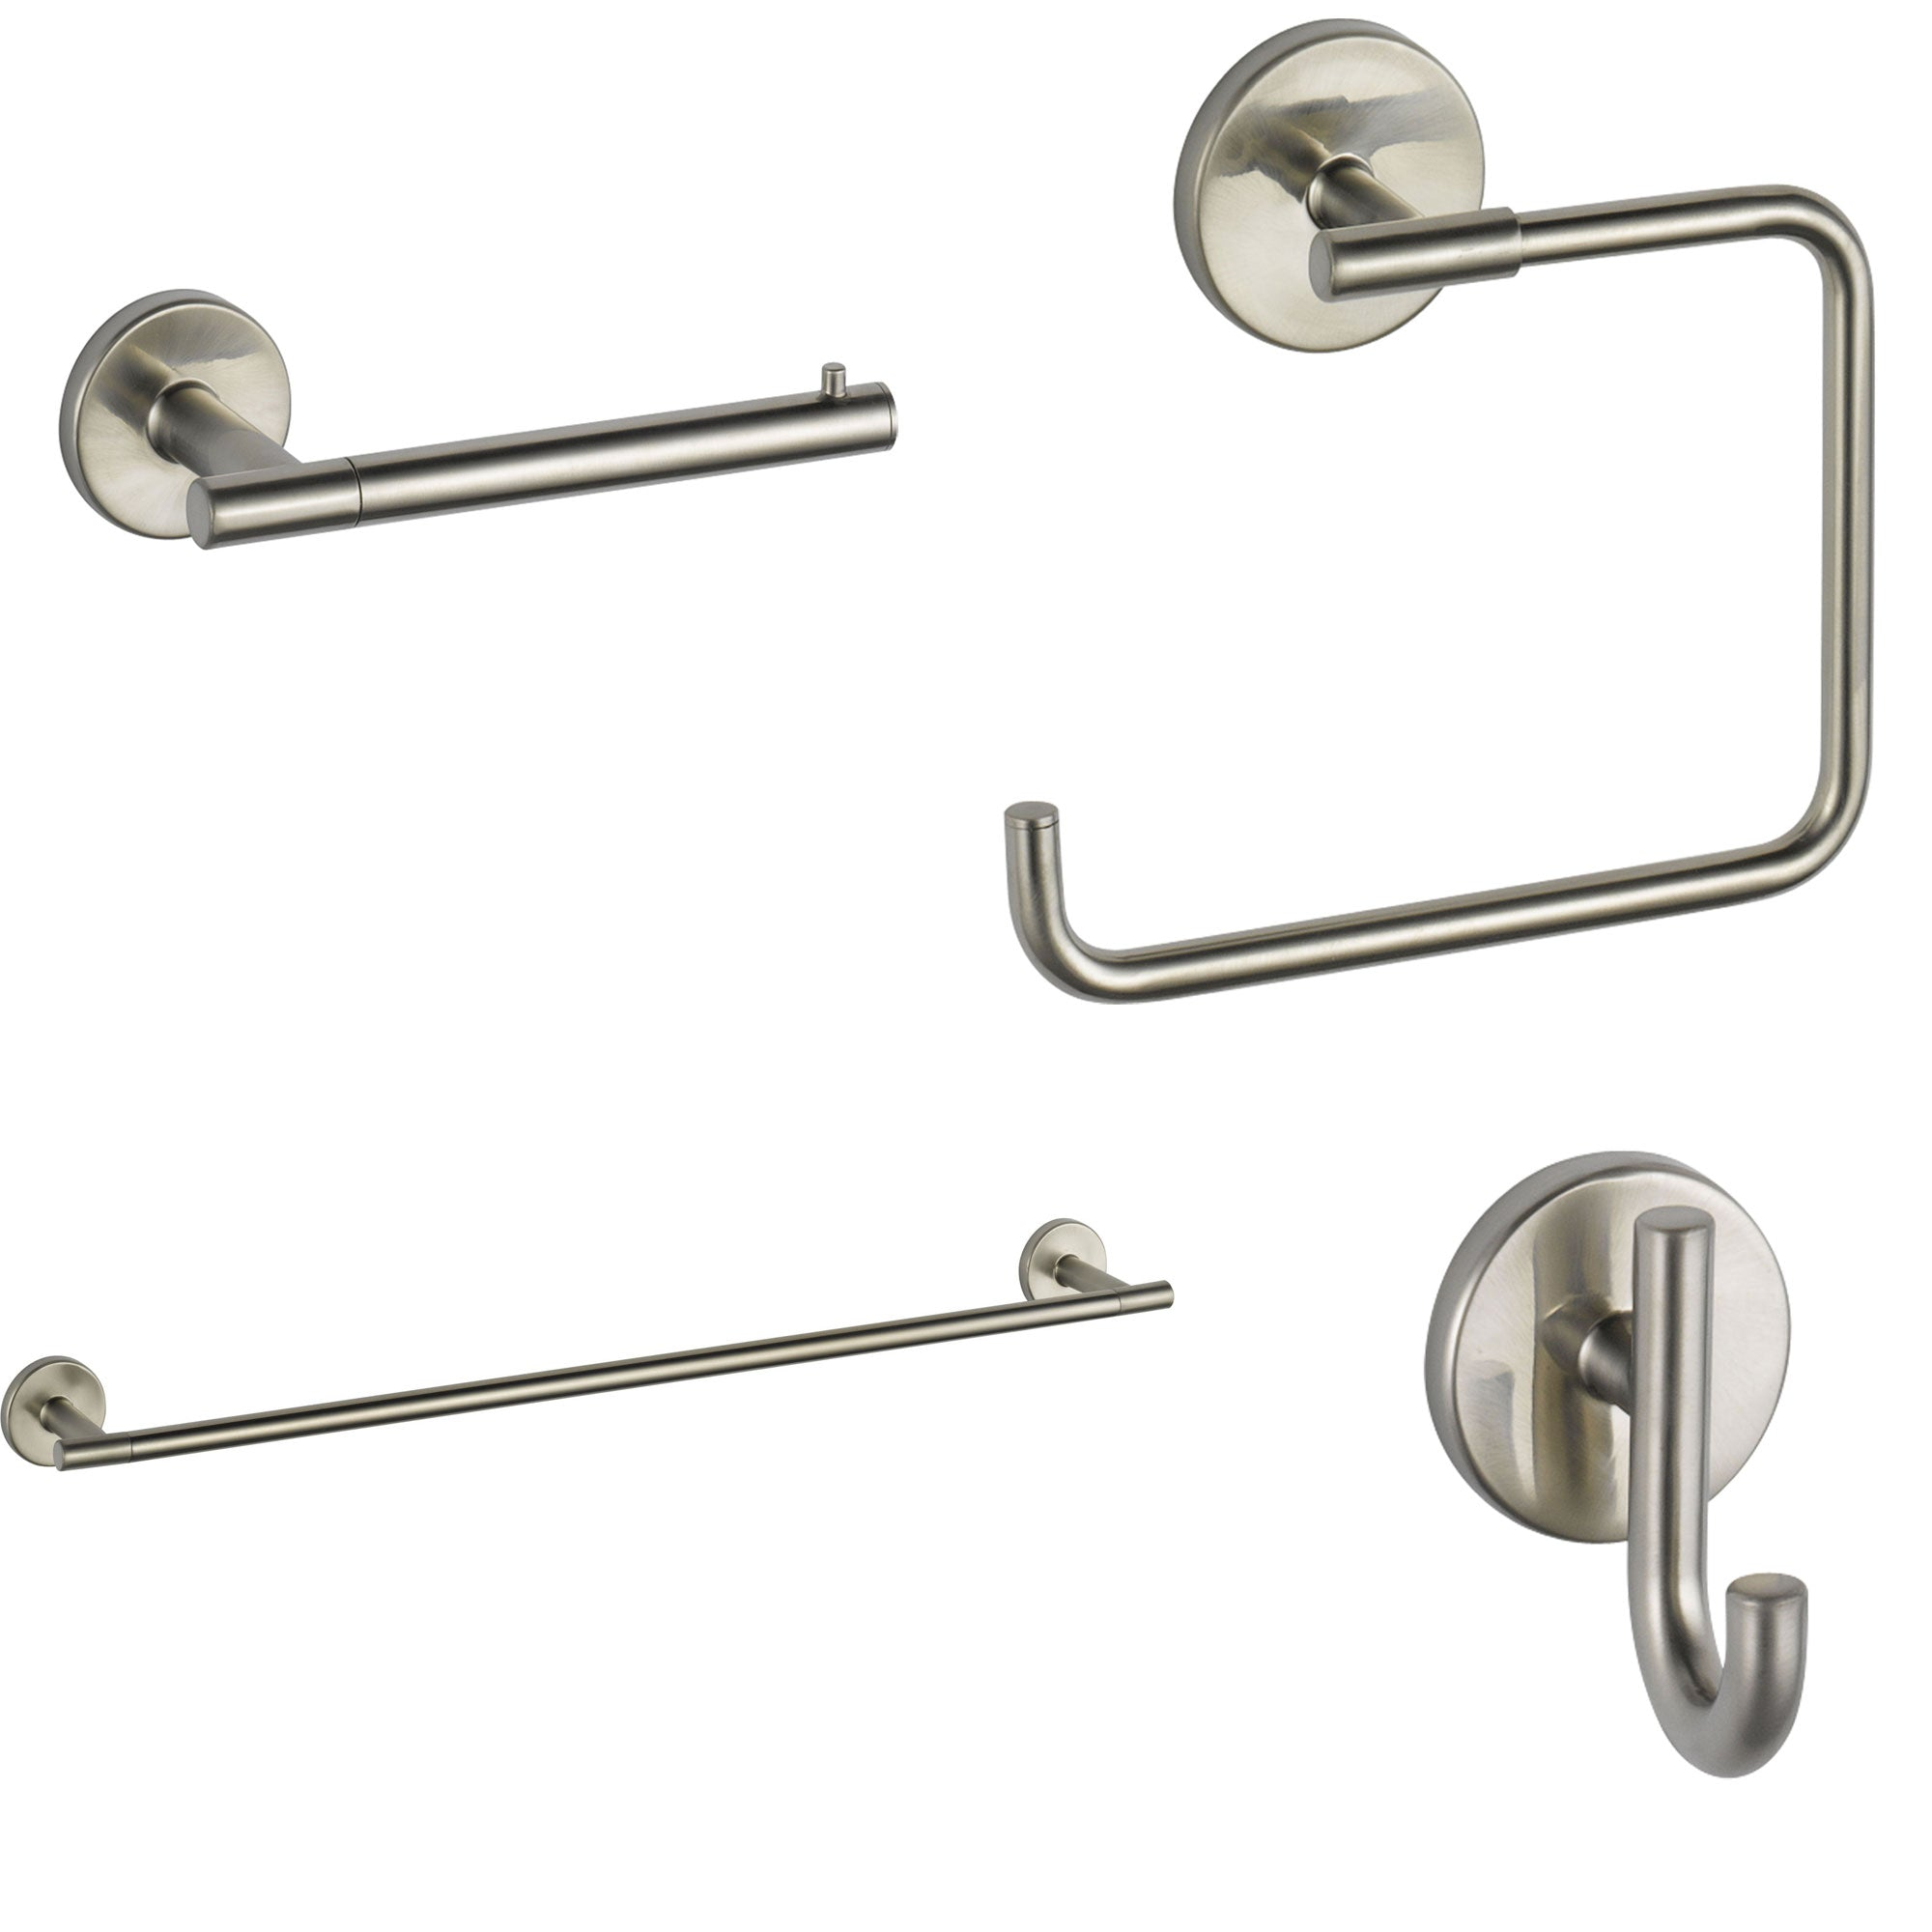 "Delta Trinsic Stainless Steel Finish STANDARD Bathroom Accessory Set Includes: 24"" Towel Bar, Toilet Paper Holder, Robe Hook, and Towel Ring D10005AP"